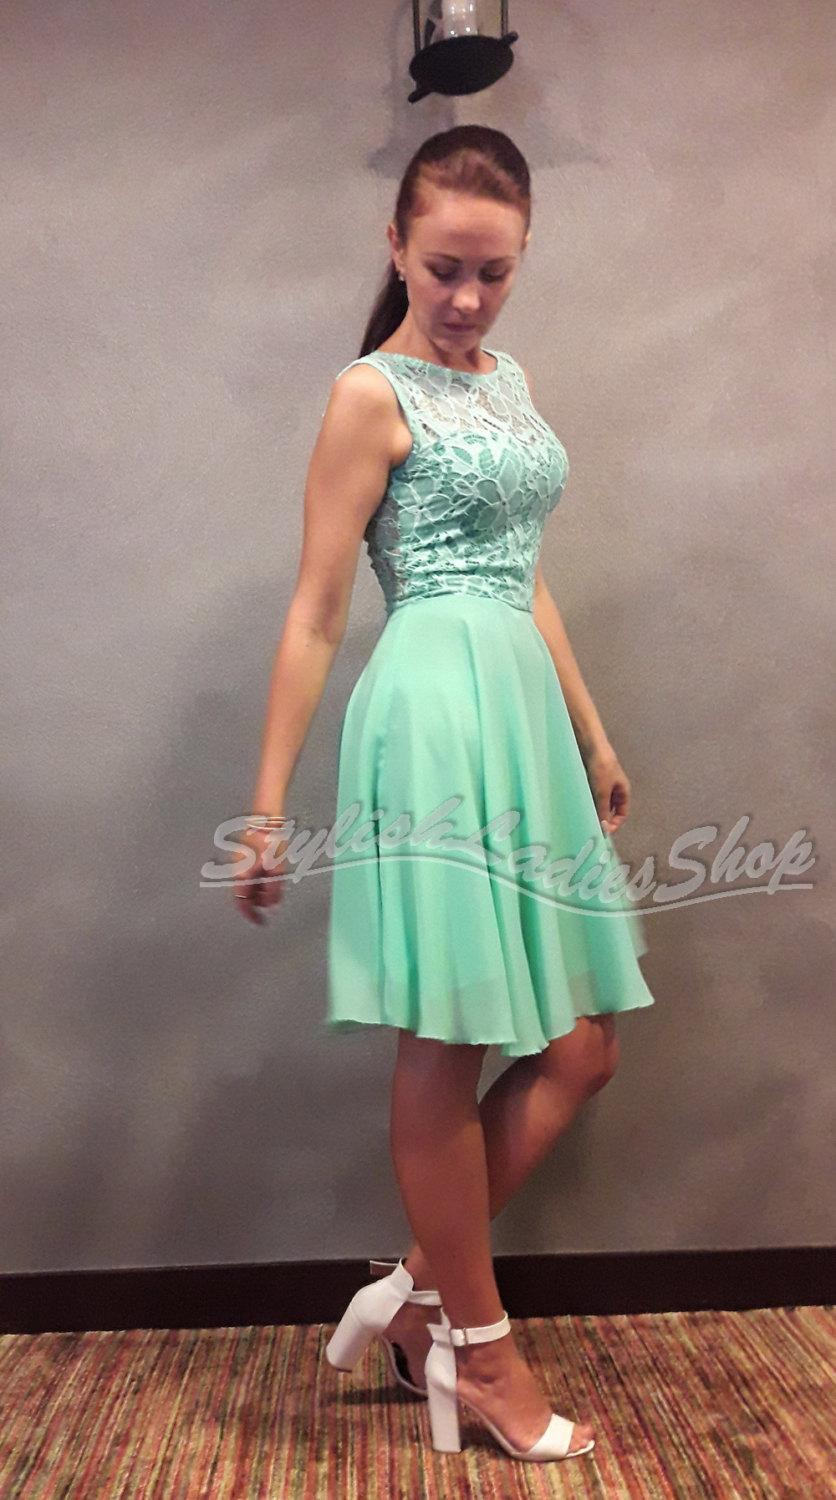 Mint dress bridesmaid short lace and chiffon dress short wedding mint dress bridesmaid short lace and chiffon dress short wedding dress bridesmaid mint lace dress red bridesmaid dress cocktail dress ombrellifo Images